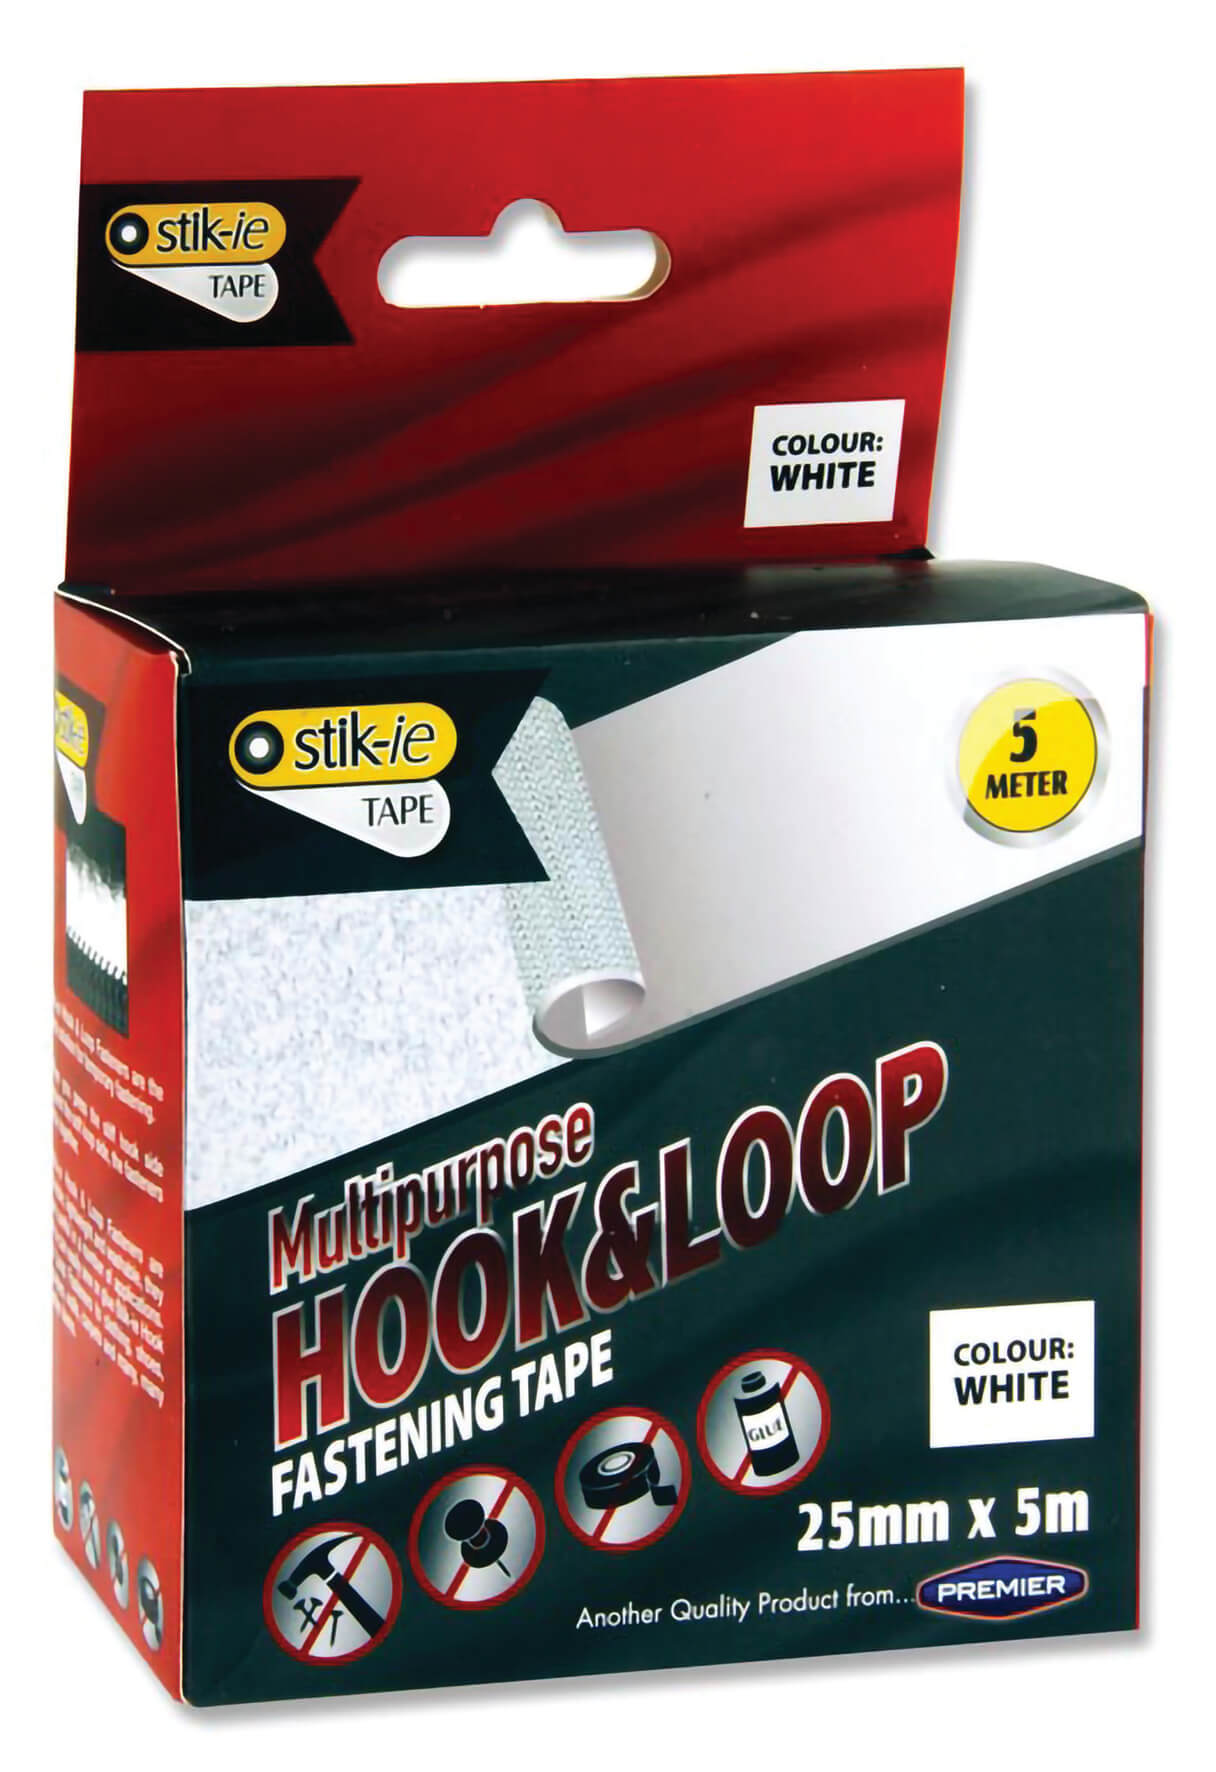 Hook & Loop Fastening Tape, White - 5m roll x 25mm